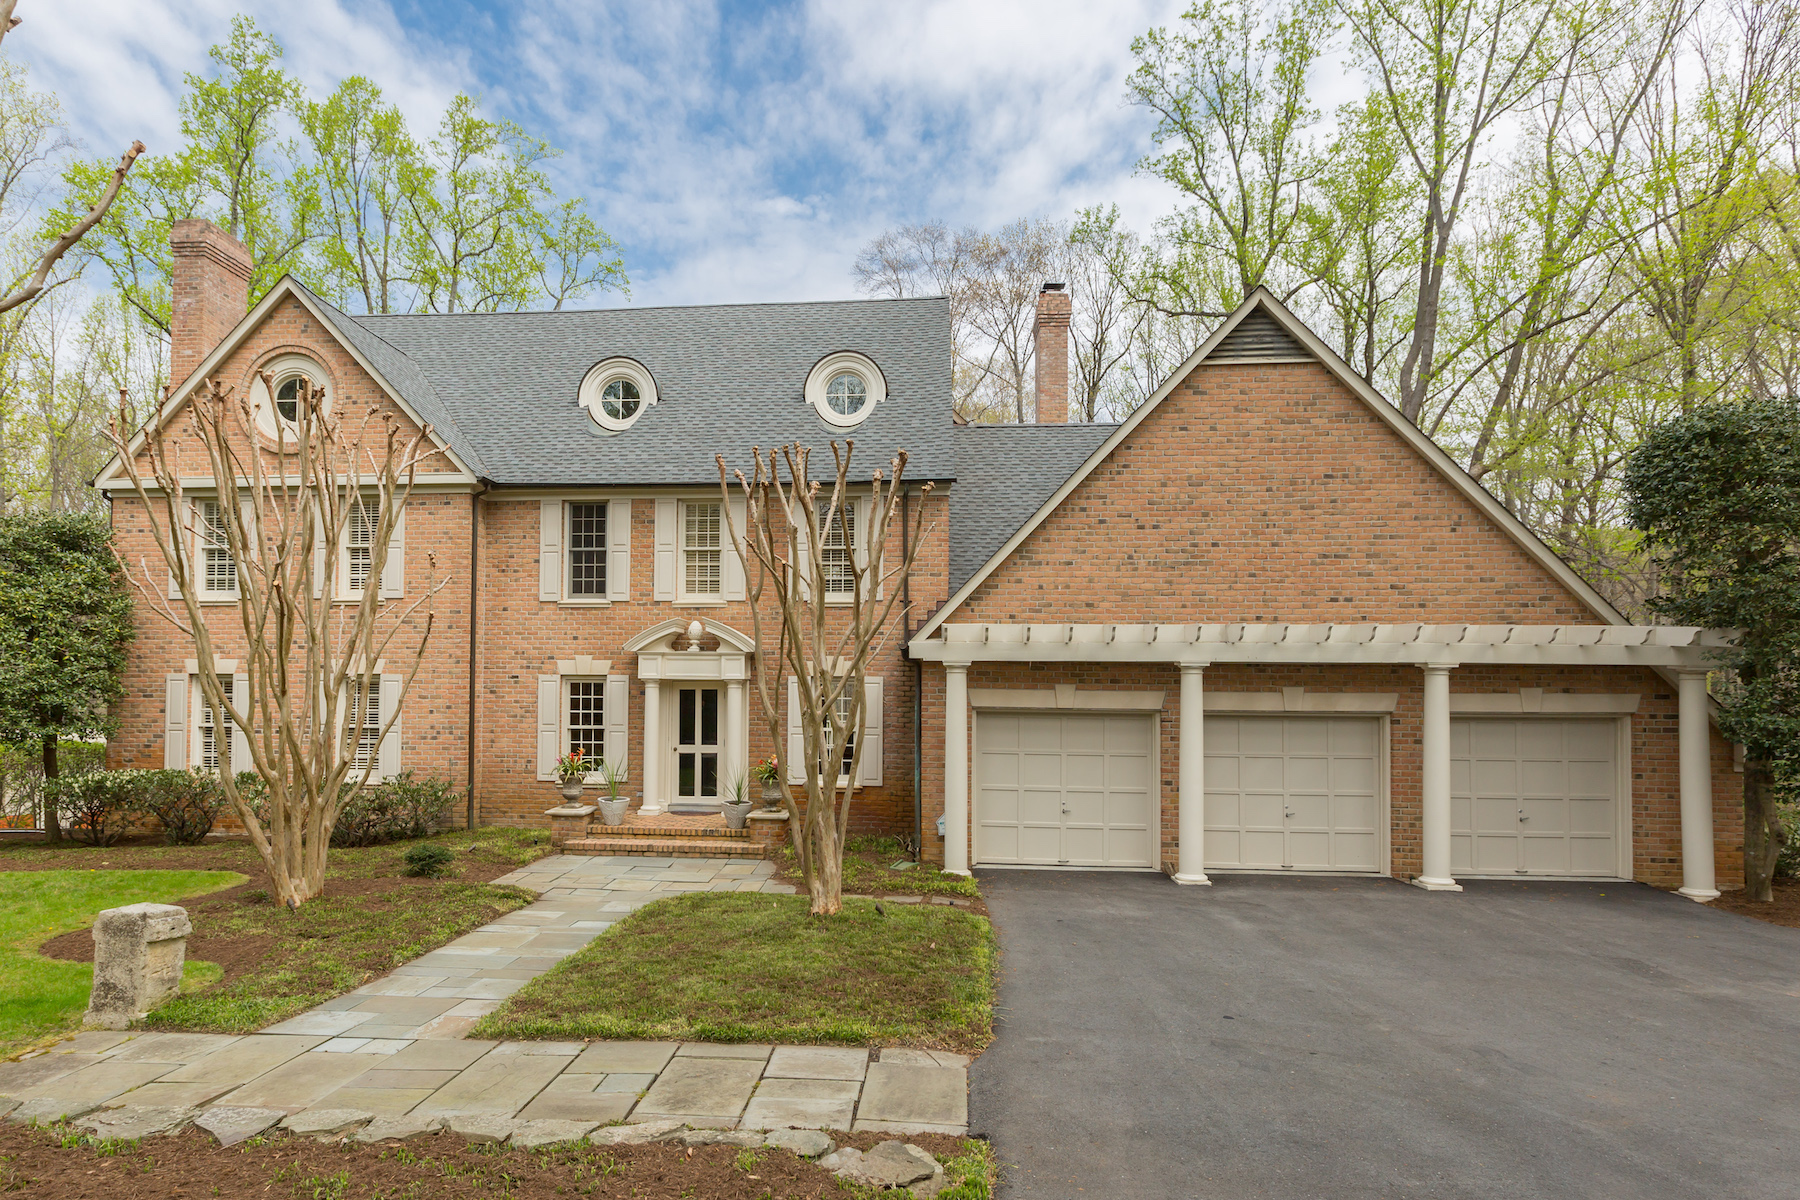 Single Family Home for Sale at Harbour Glen 1241 Harbor Glen Ct Arnold, Maryland 21012 United States